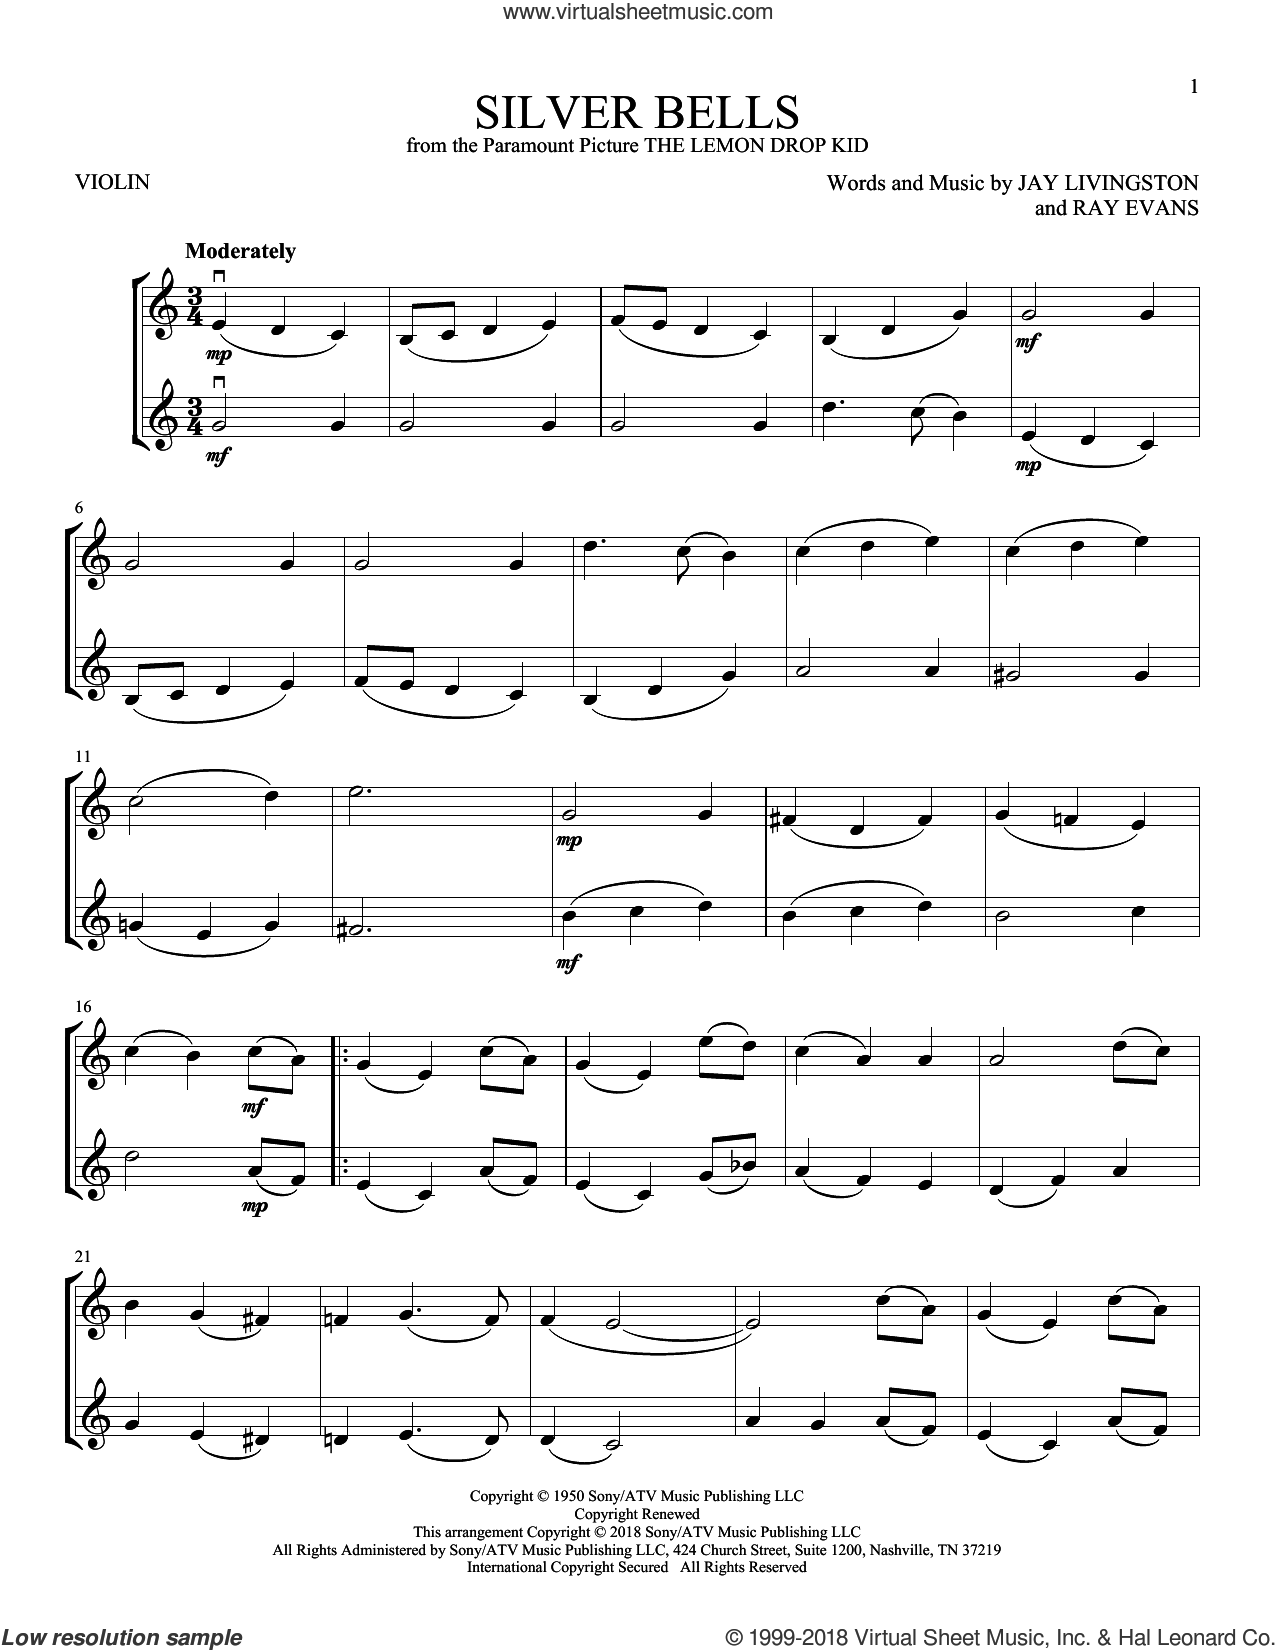 Silver Bells sheet music for two violins (duets, violin duets) by Jay Livingston and Ray Evans, intermediate skill level